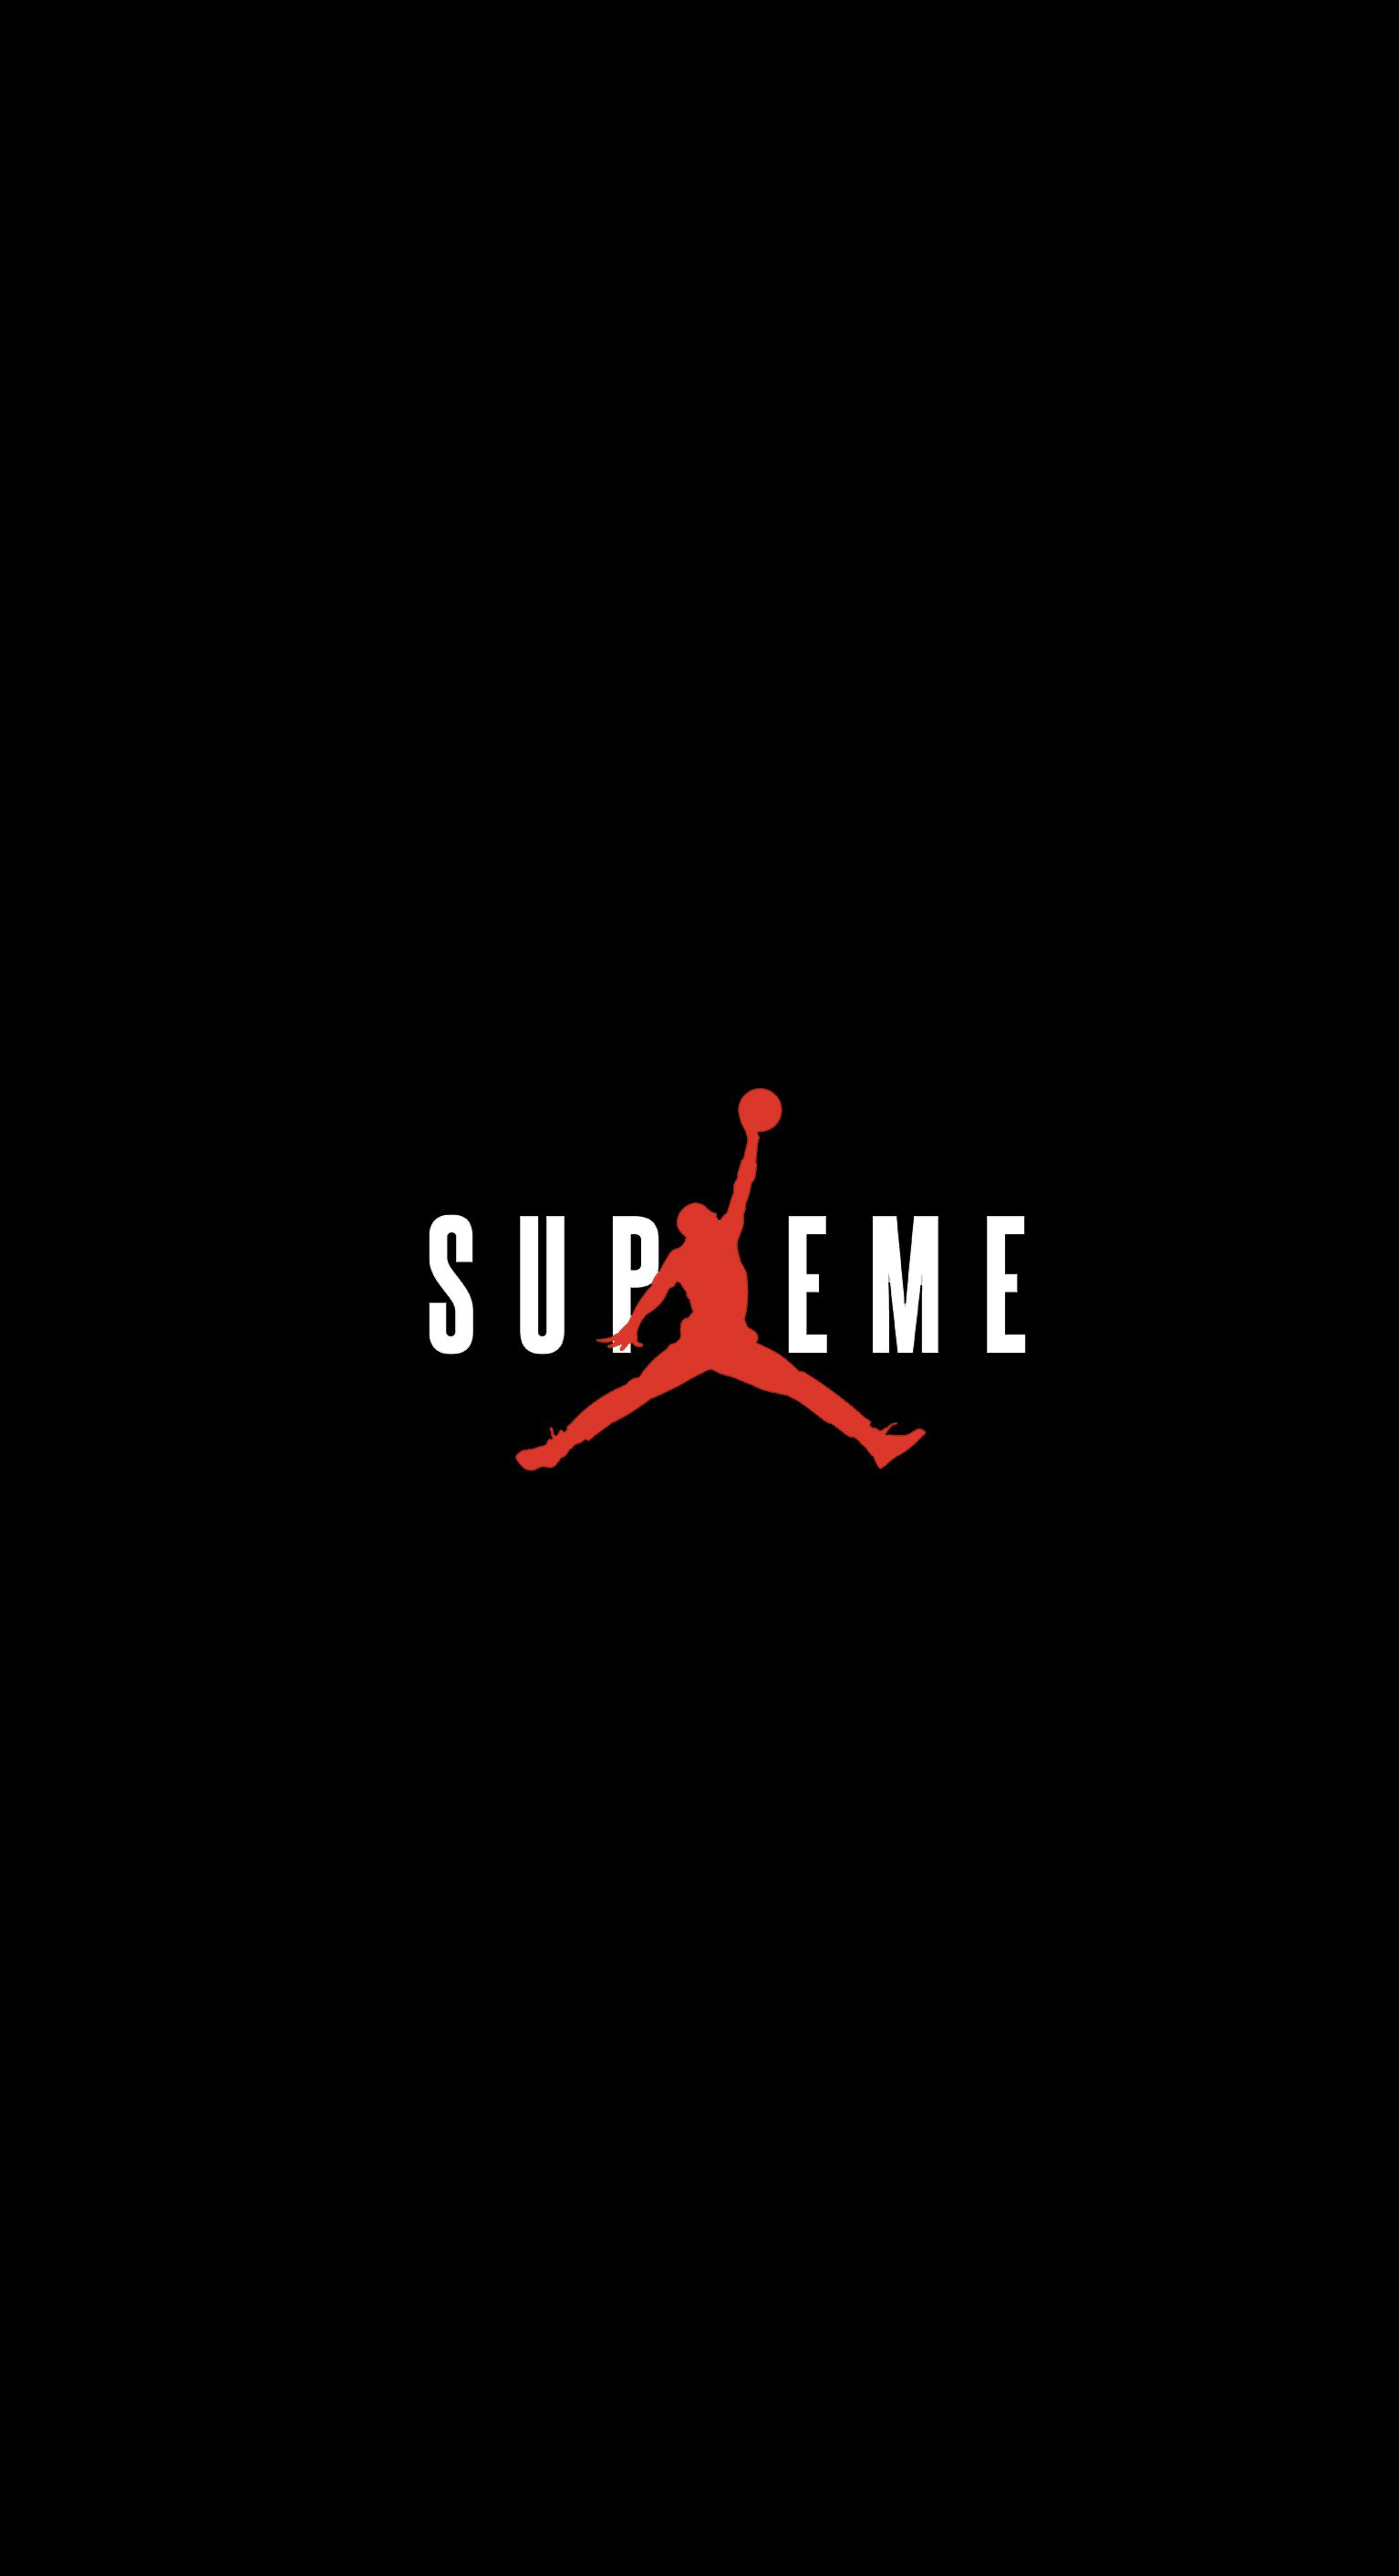 michael jordan wallpapers hd download free supreme in 2019